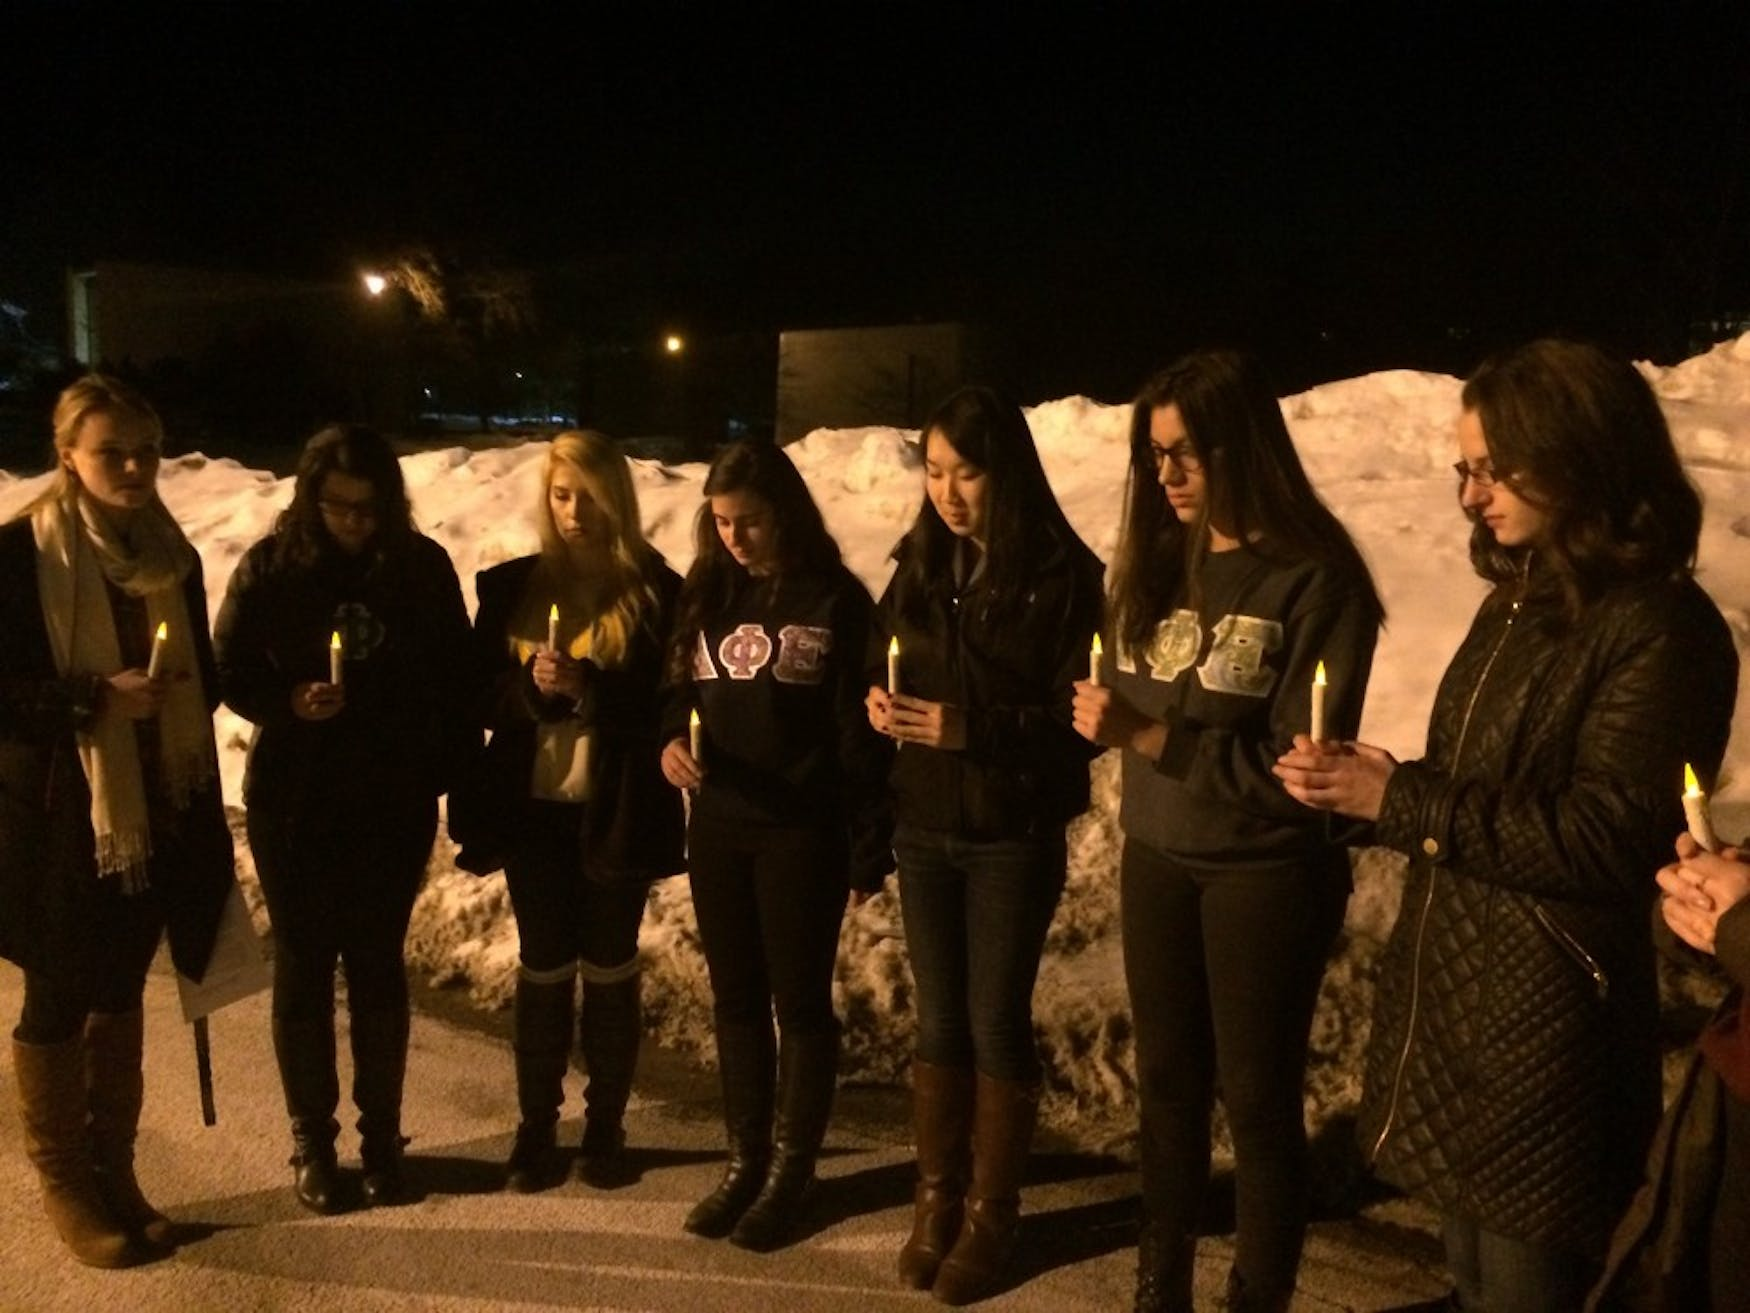 SEEKING SOLACE: Members of the Delta Phi Epsilon sorority hold a candlelight vigil to talk about eating disorders and share personal stories to spread awareness in their partnership with The National Association for Anorexia and Associated Disorders.